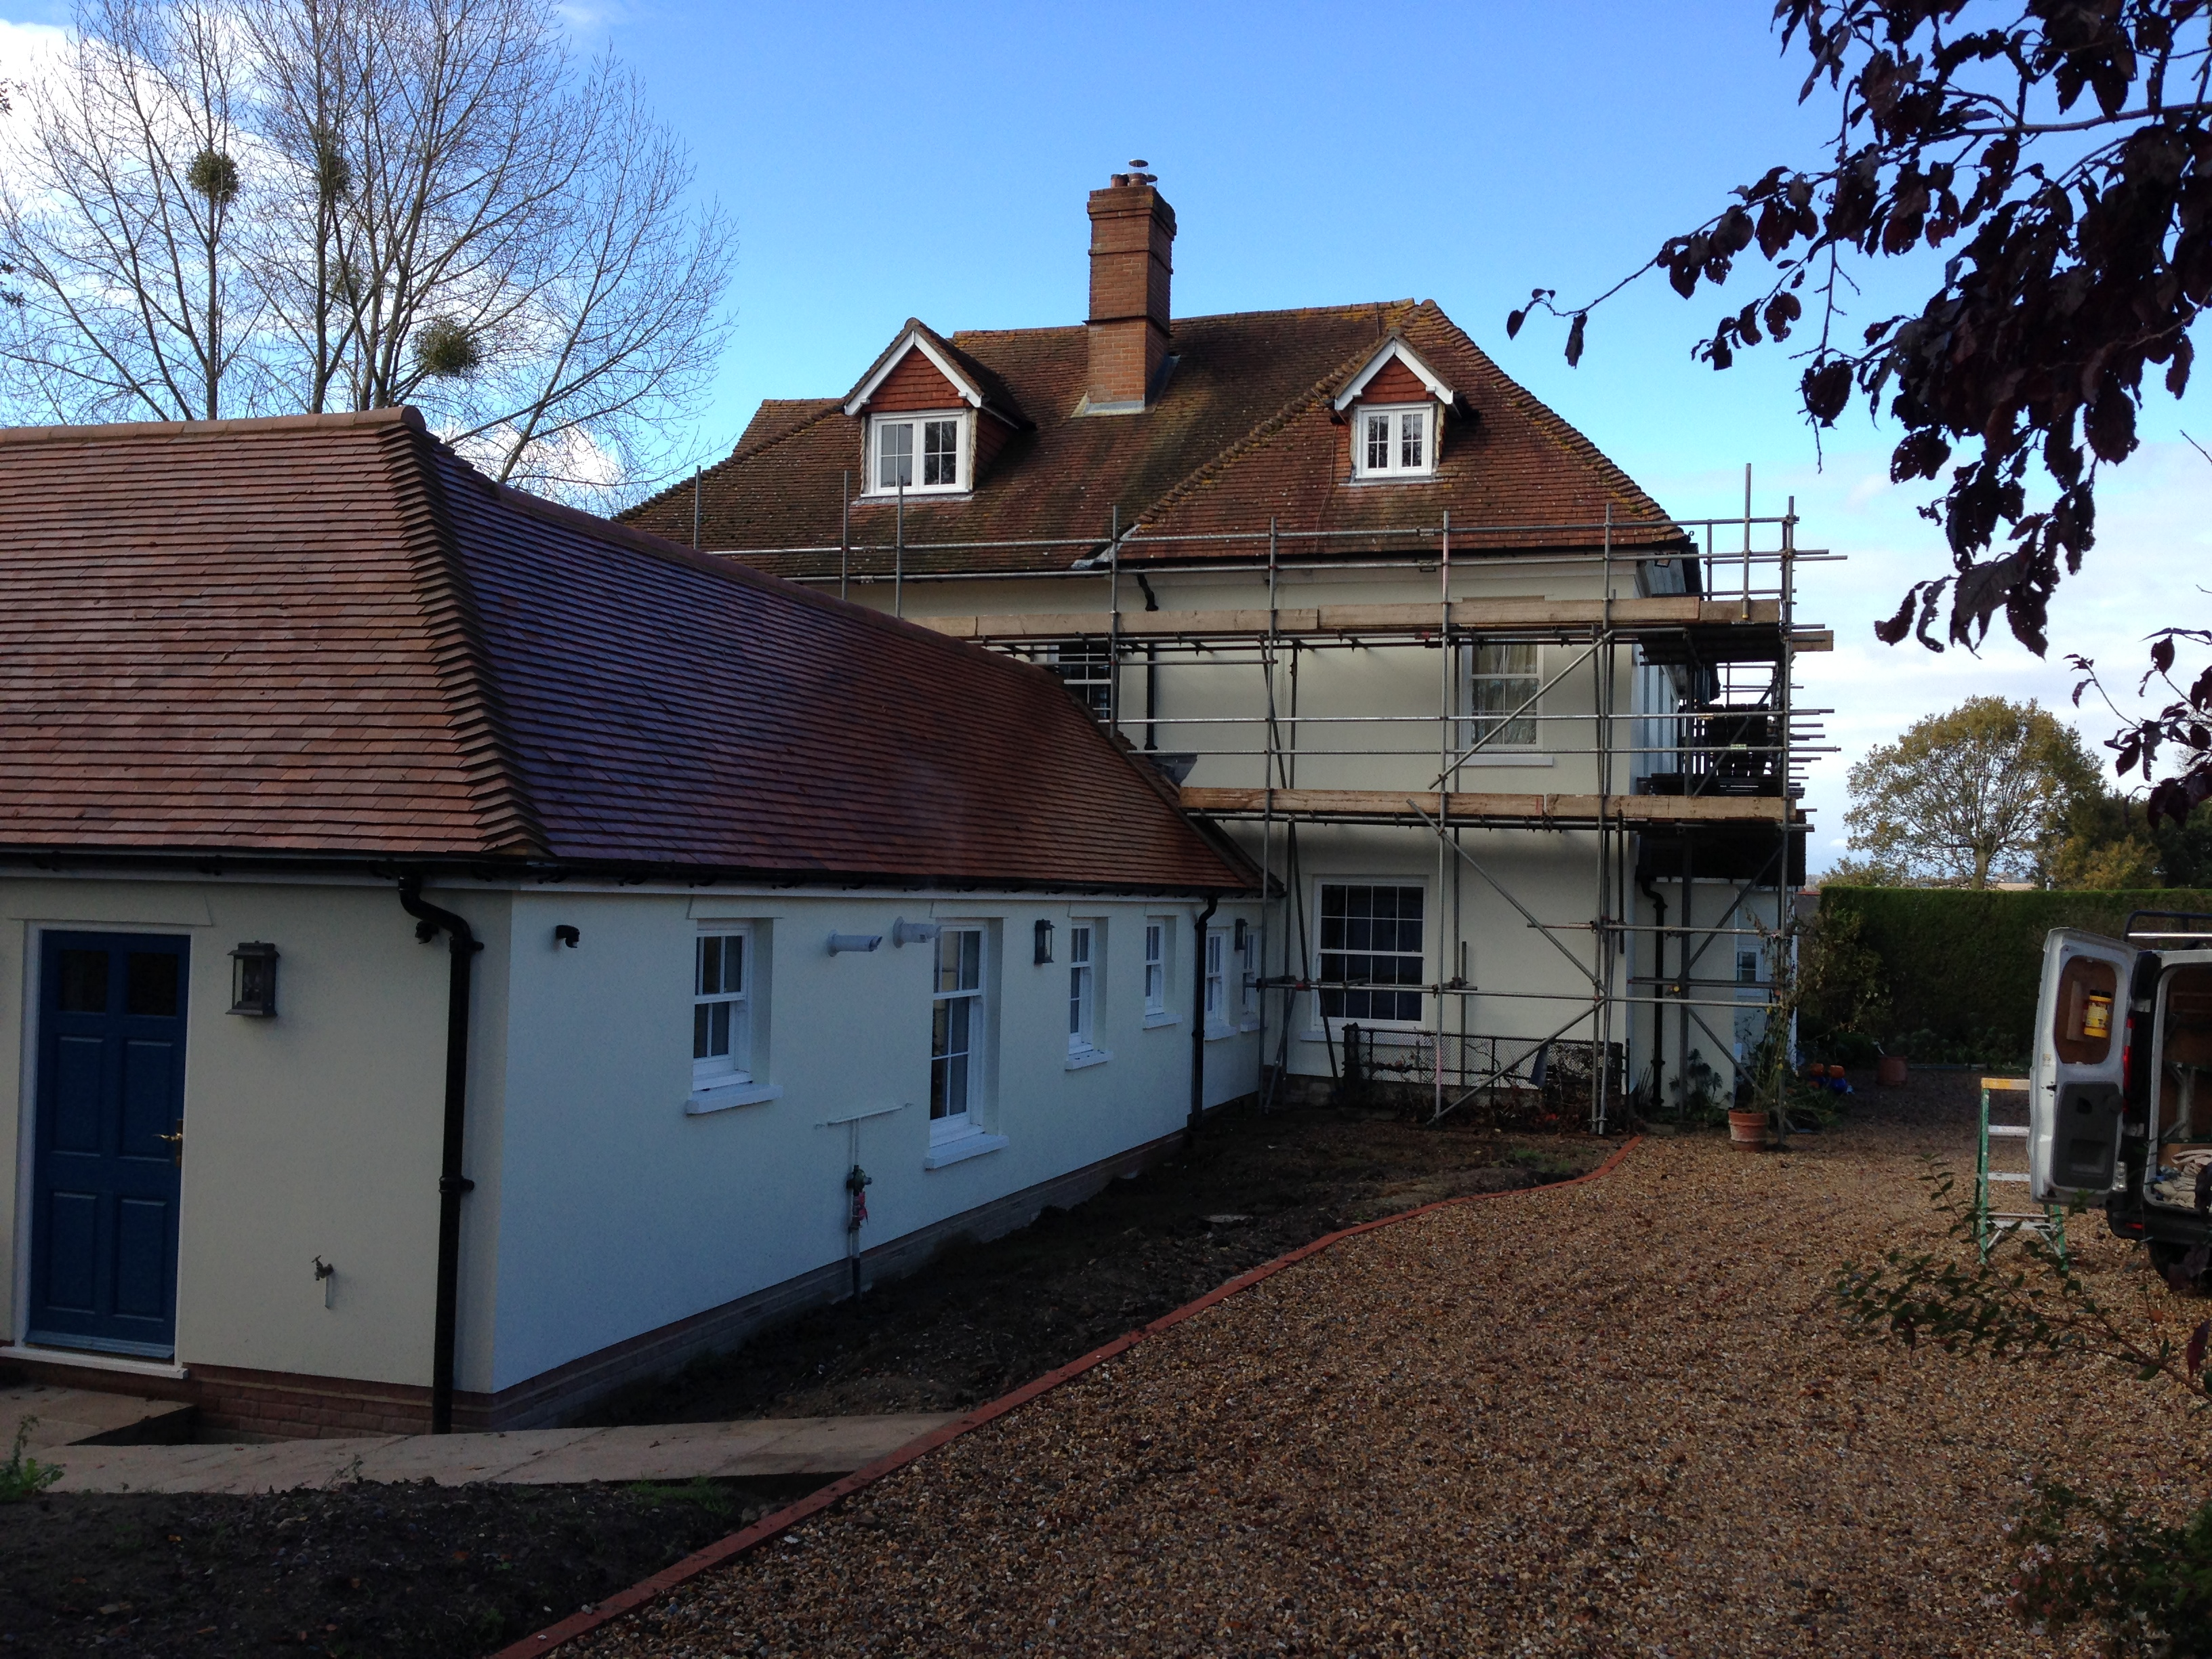 external decorations decorating painting throughout the meon valley hampshire petersfield alton by Baker Southern Ltd decorators and fine finishers